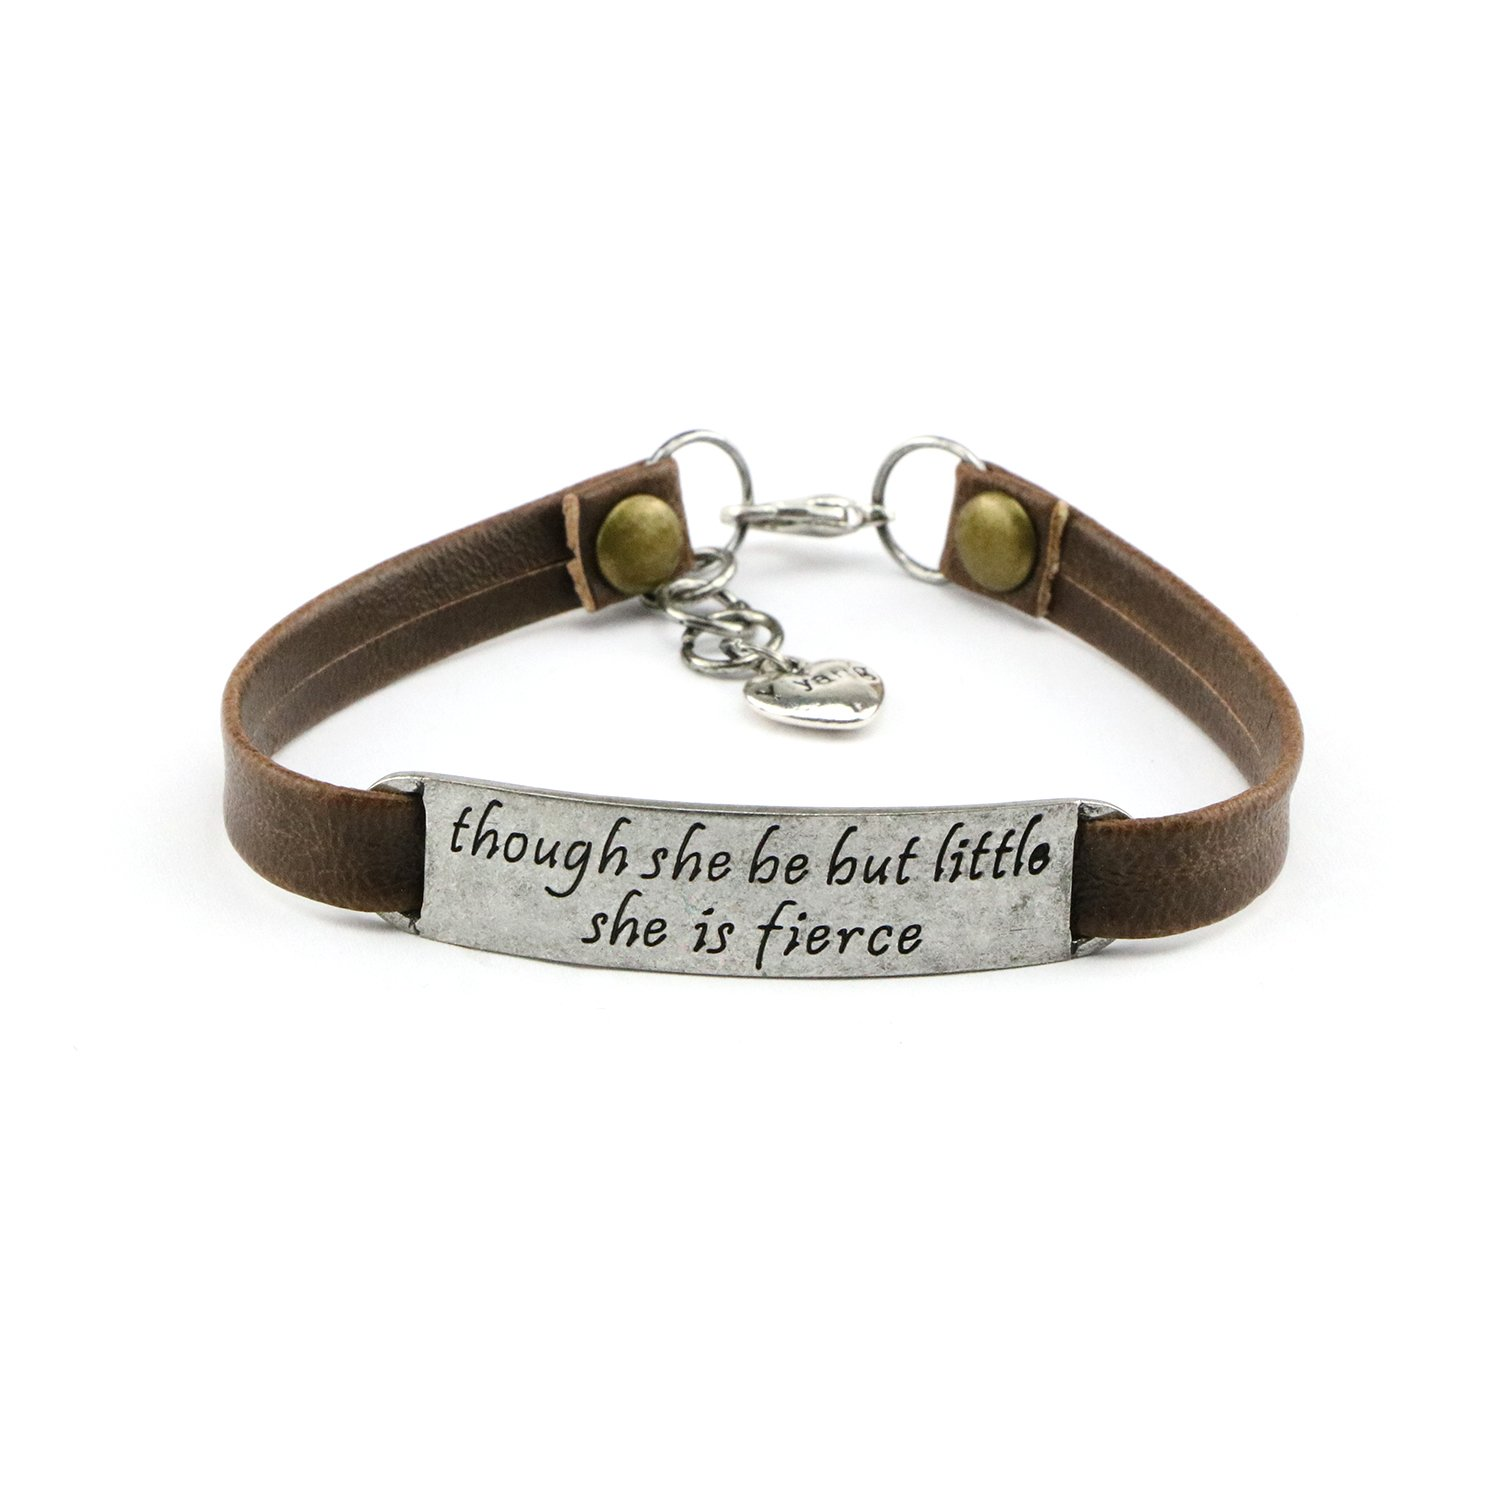 UNQJRY Girl's Bracelet Leather Jewelry Inspiraitonal Engraving Feminist Saying Though She Be But Little She is Fierce